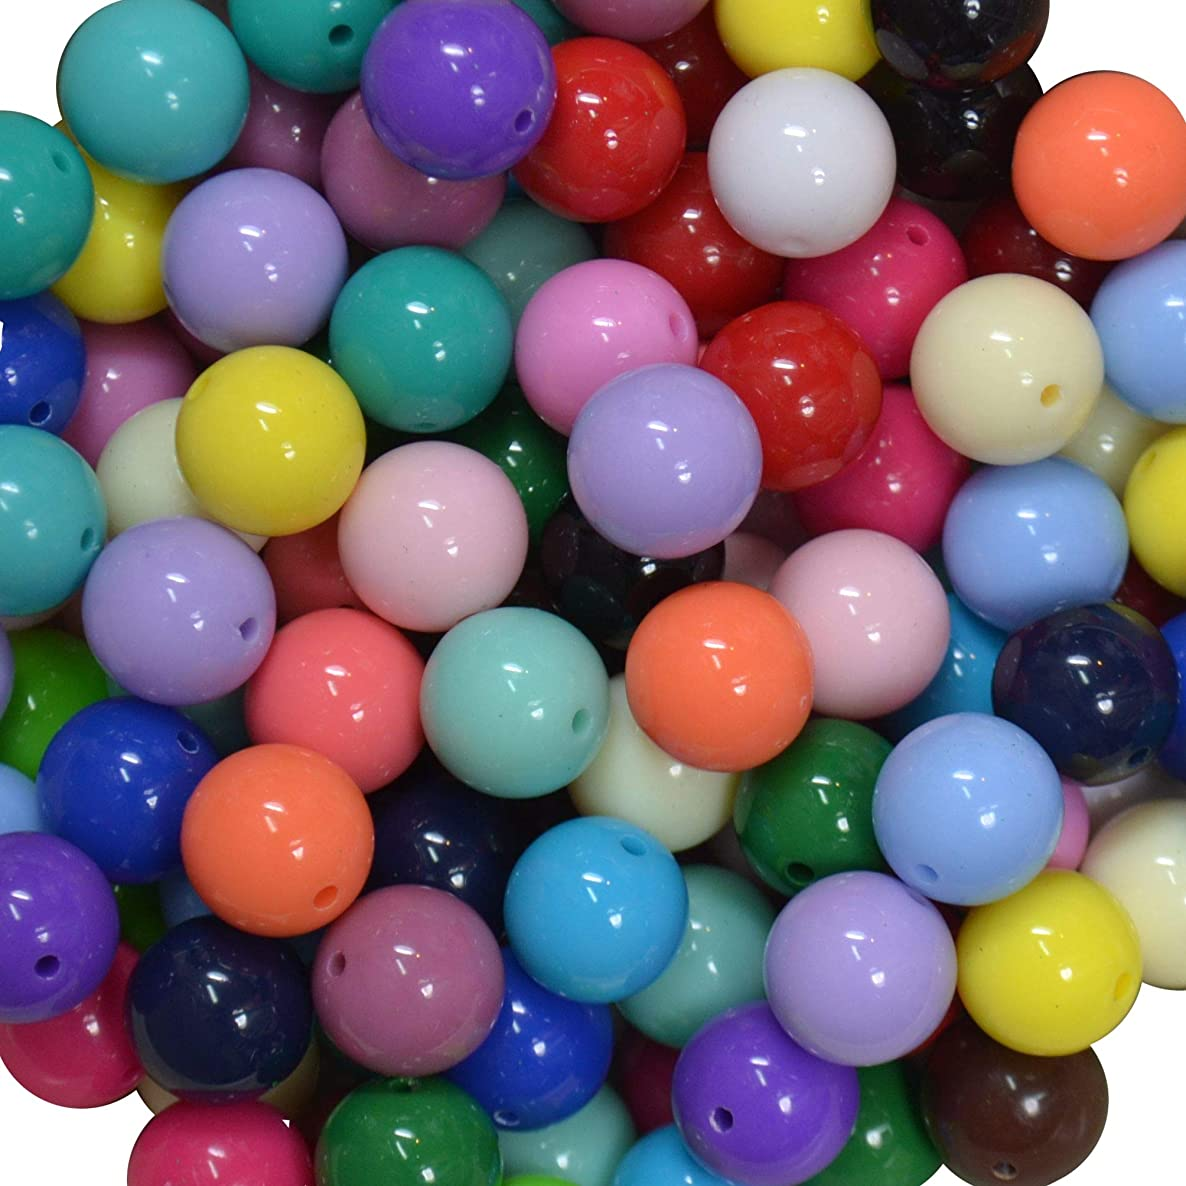 16mm Bulk Mix of Solid Chunky Bubblegum Beads 24 Colors, 240 Acrylic Gumball Beads